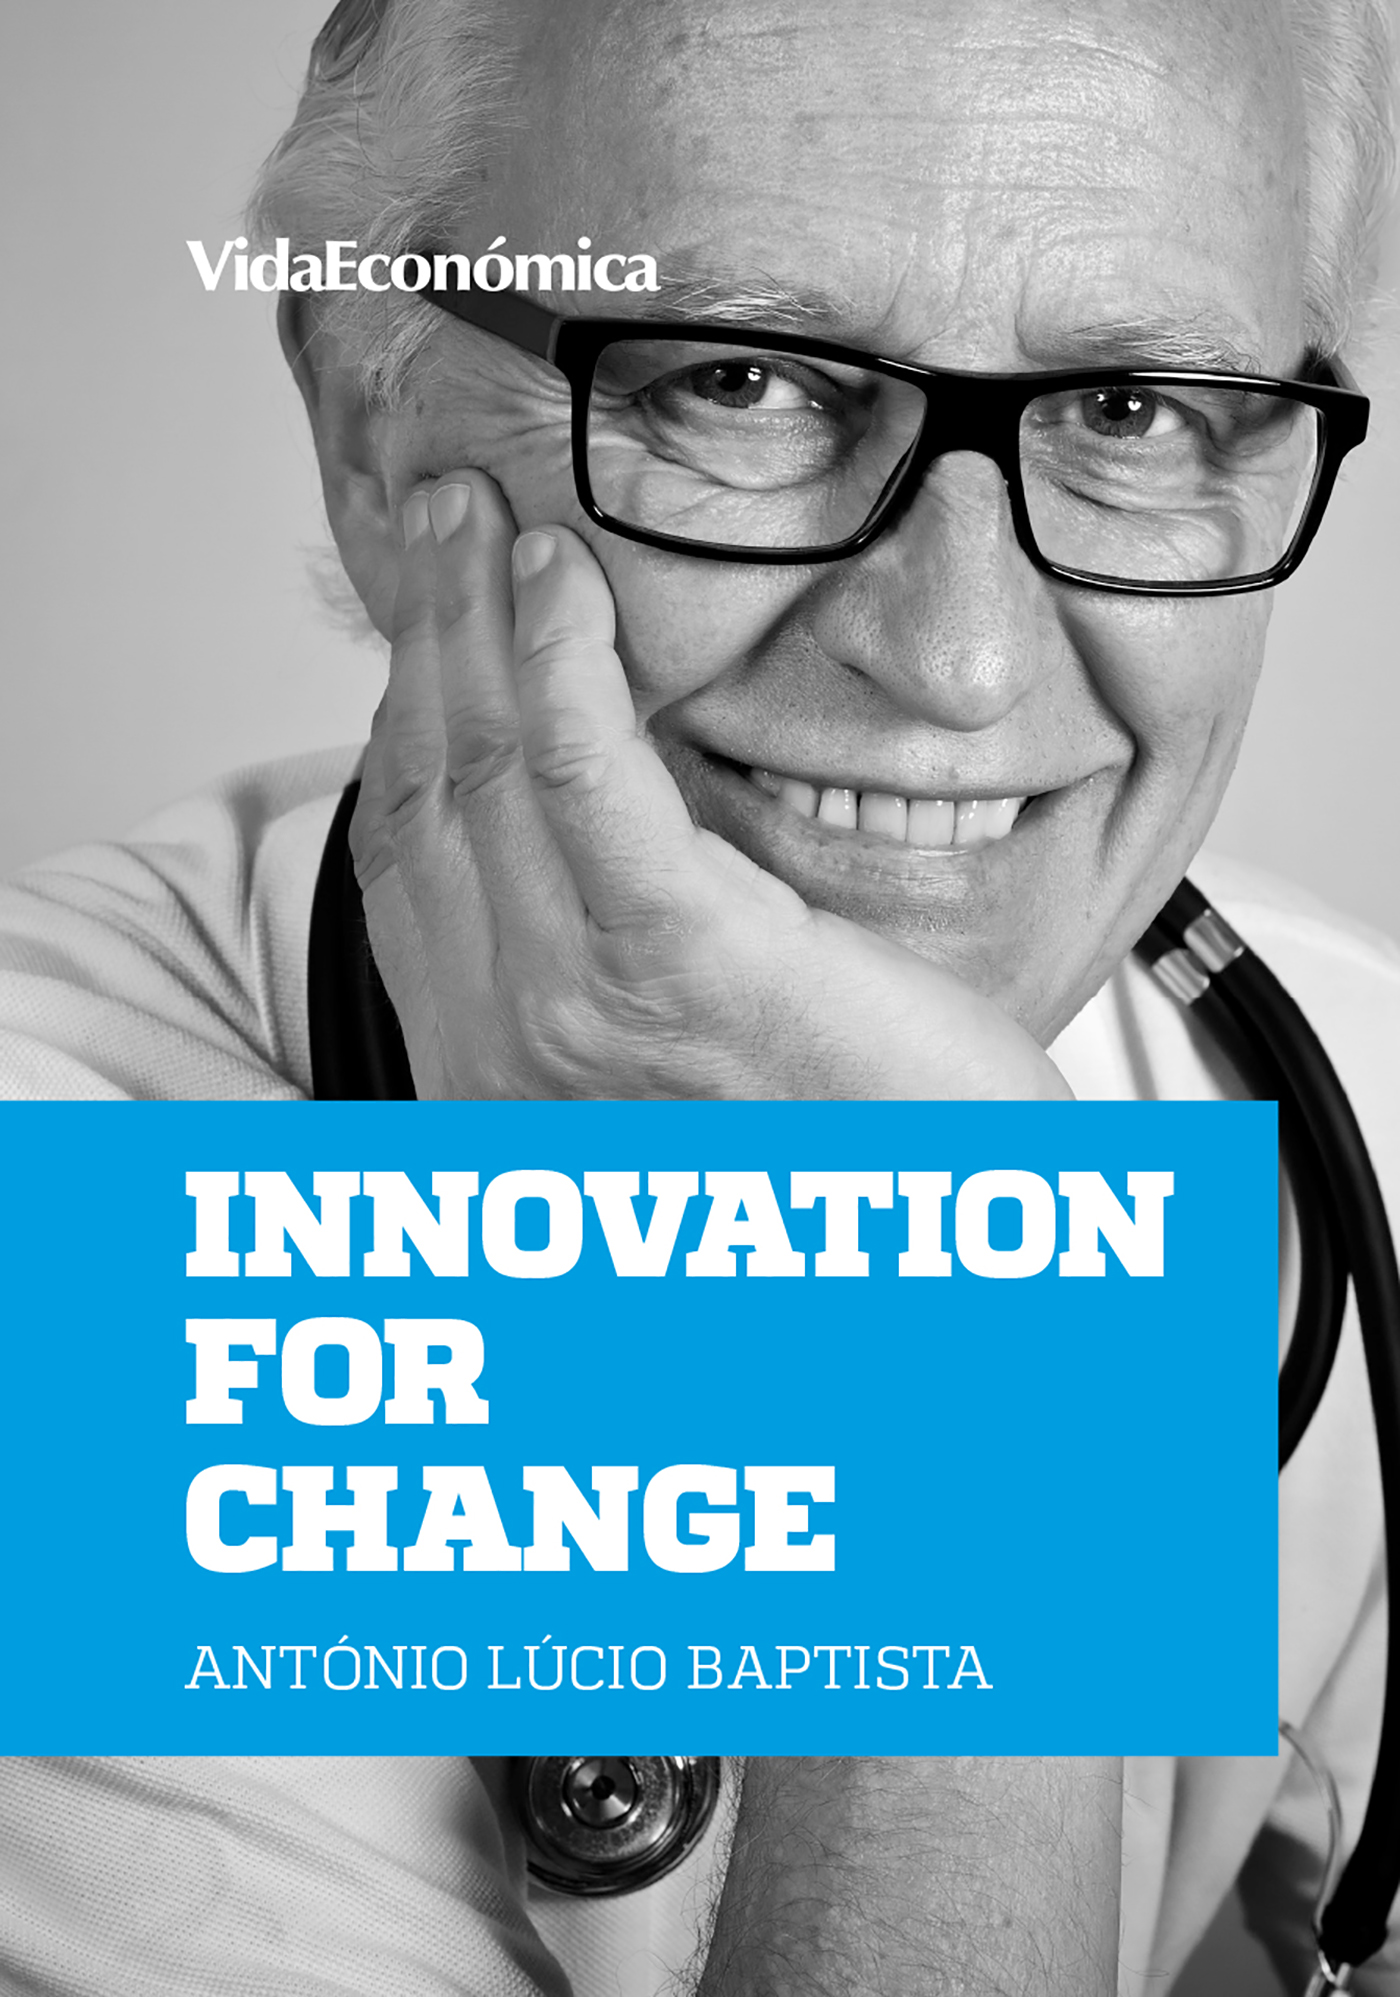 Innovation for change